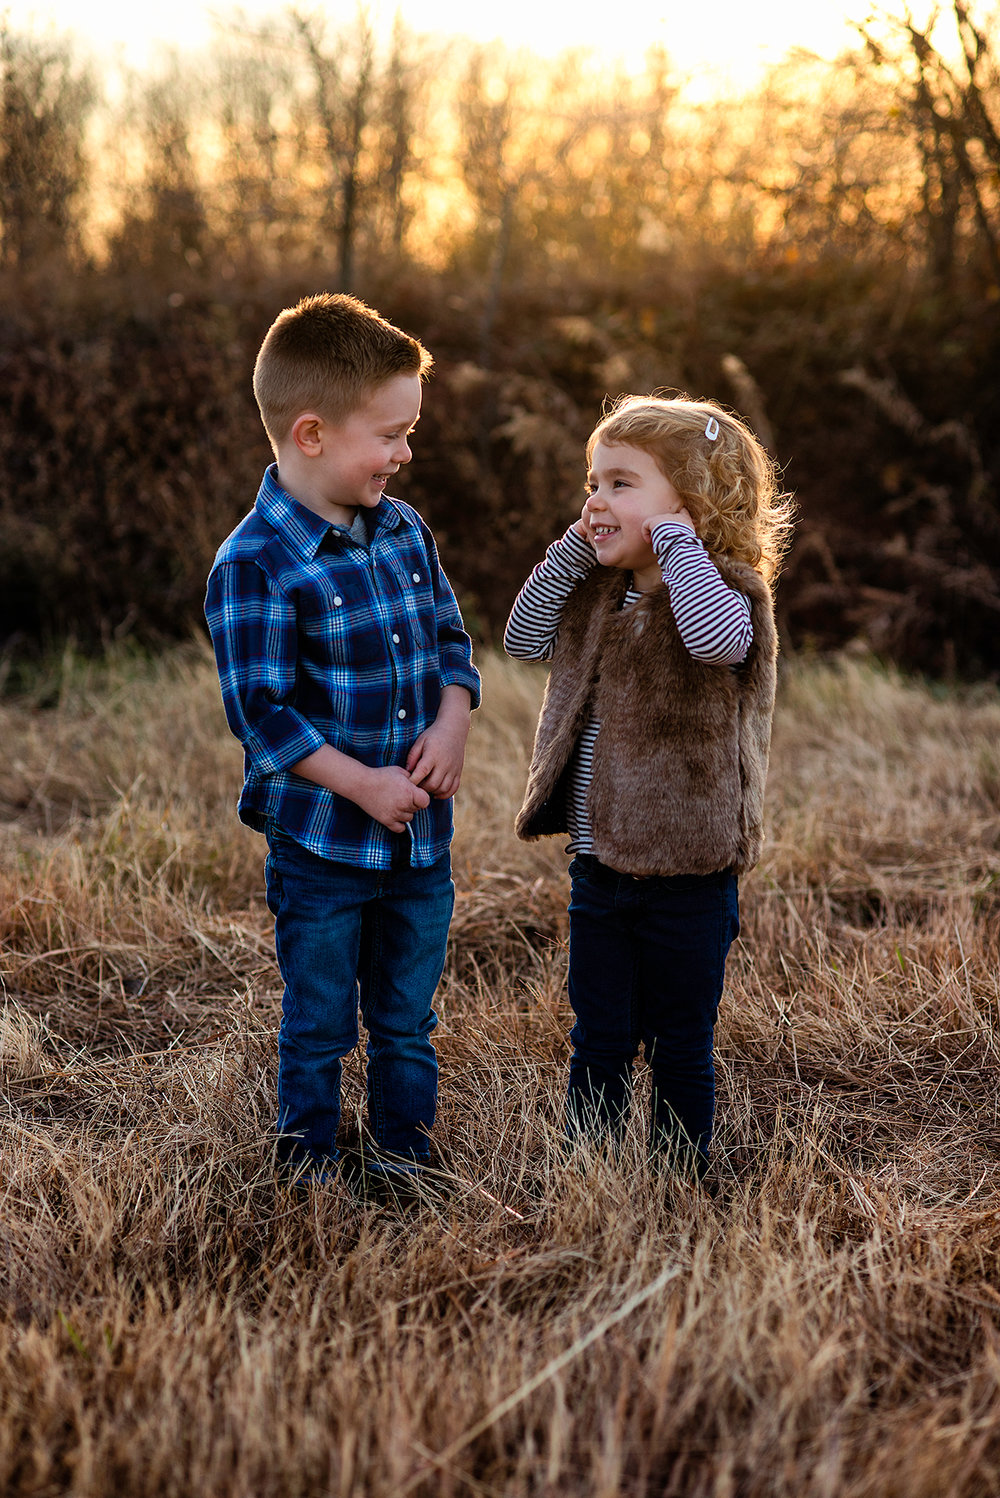 McKinney Texas Toddler Photoshoot with Brother and Sister playing in field during sunset